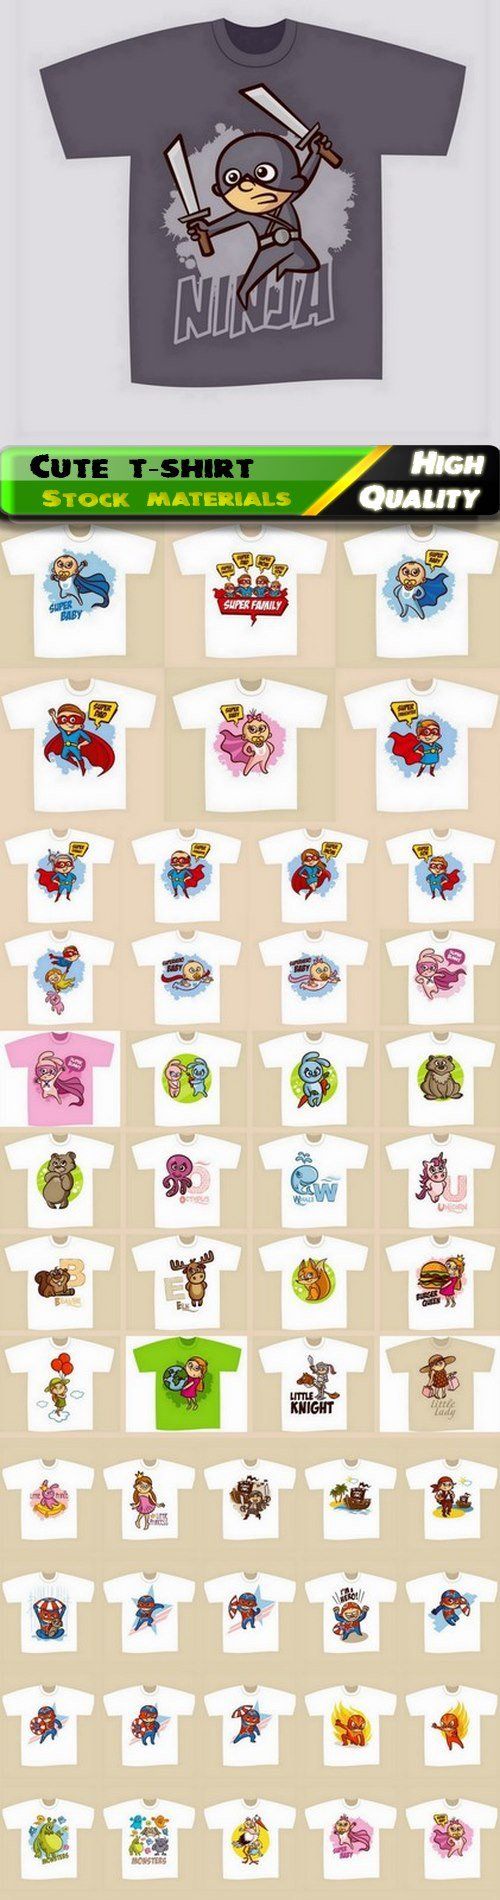 Cute fashion stylish t-shirt print for kids and children clothes 50 Eps